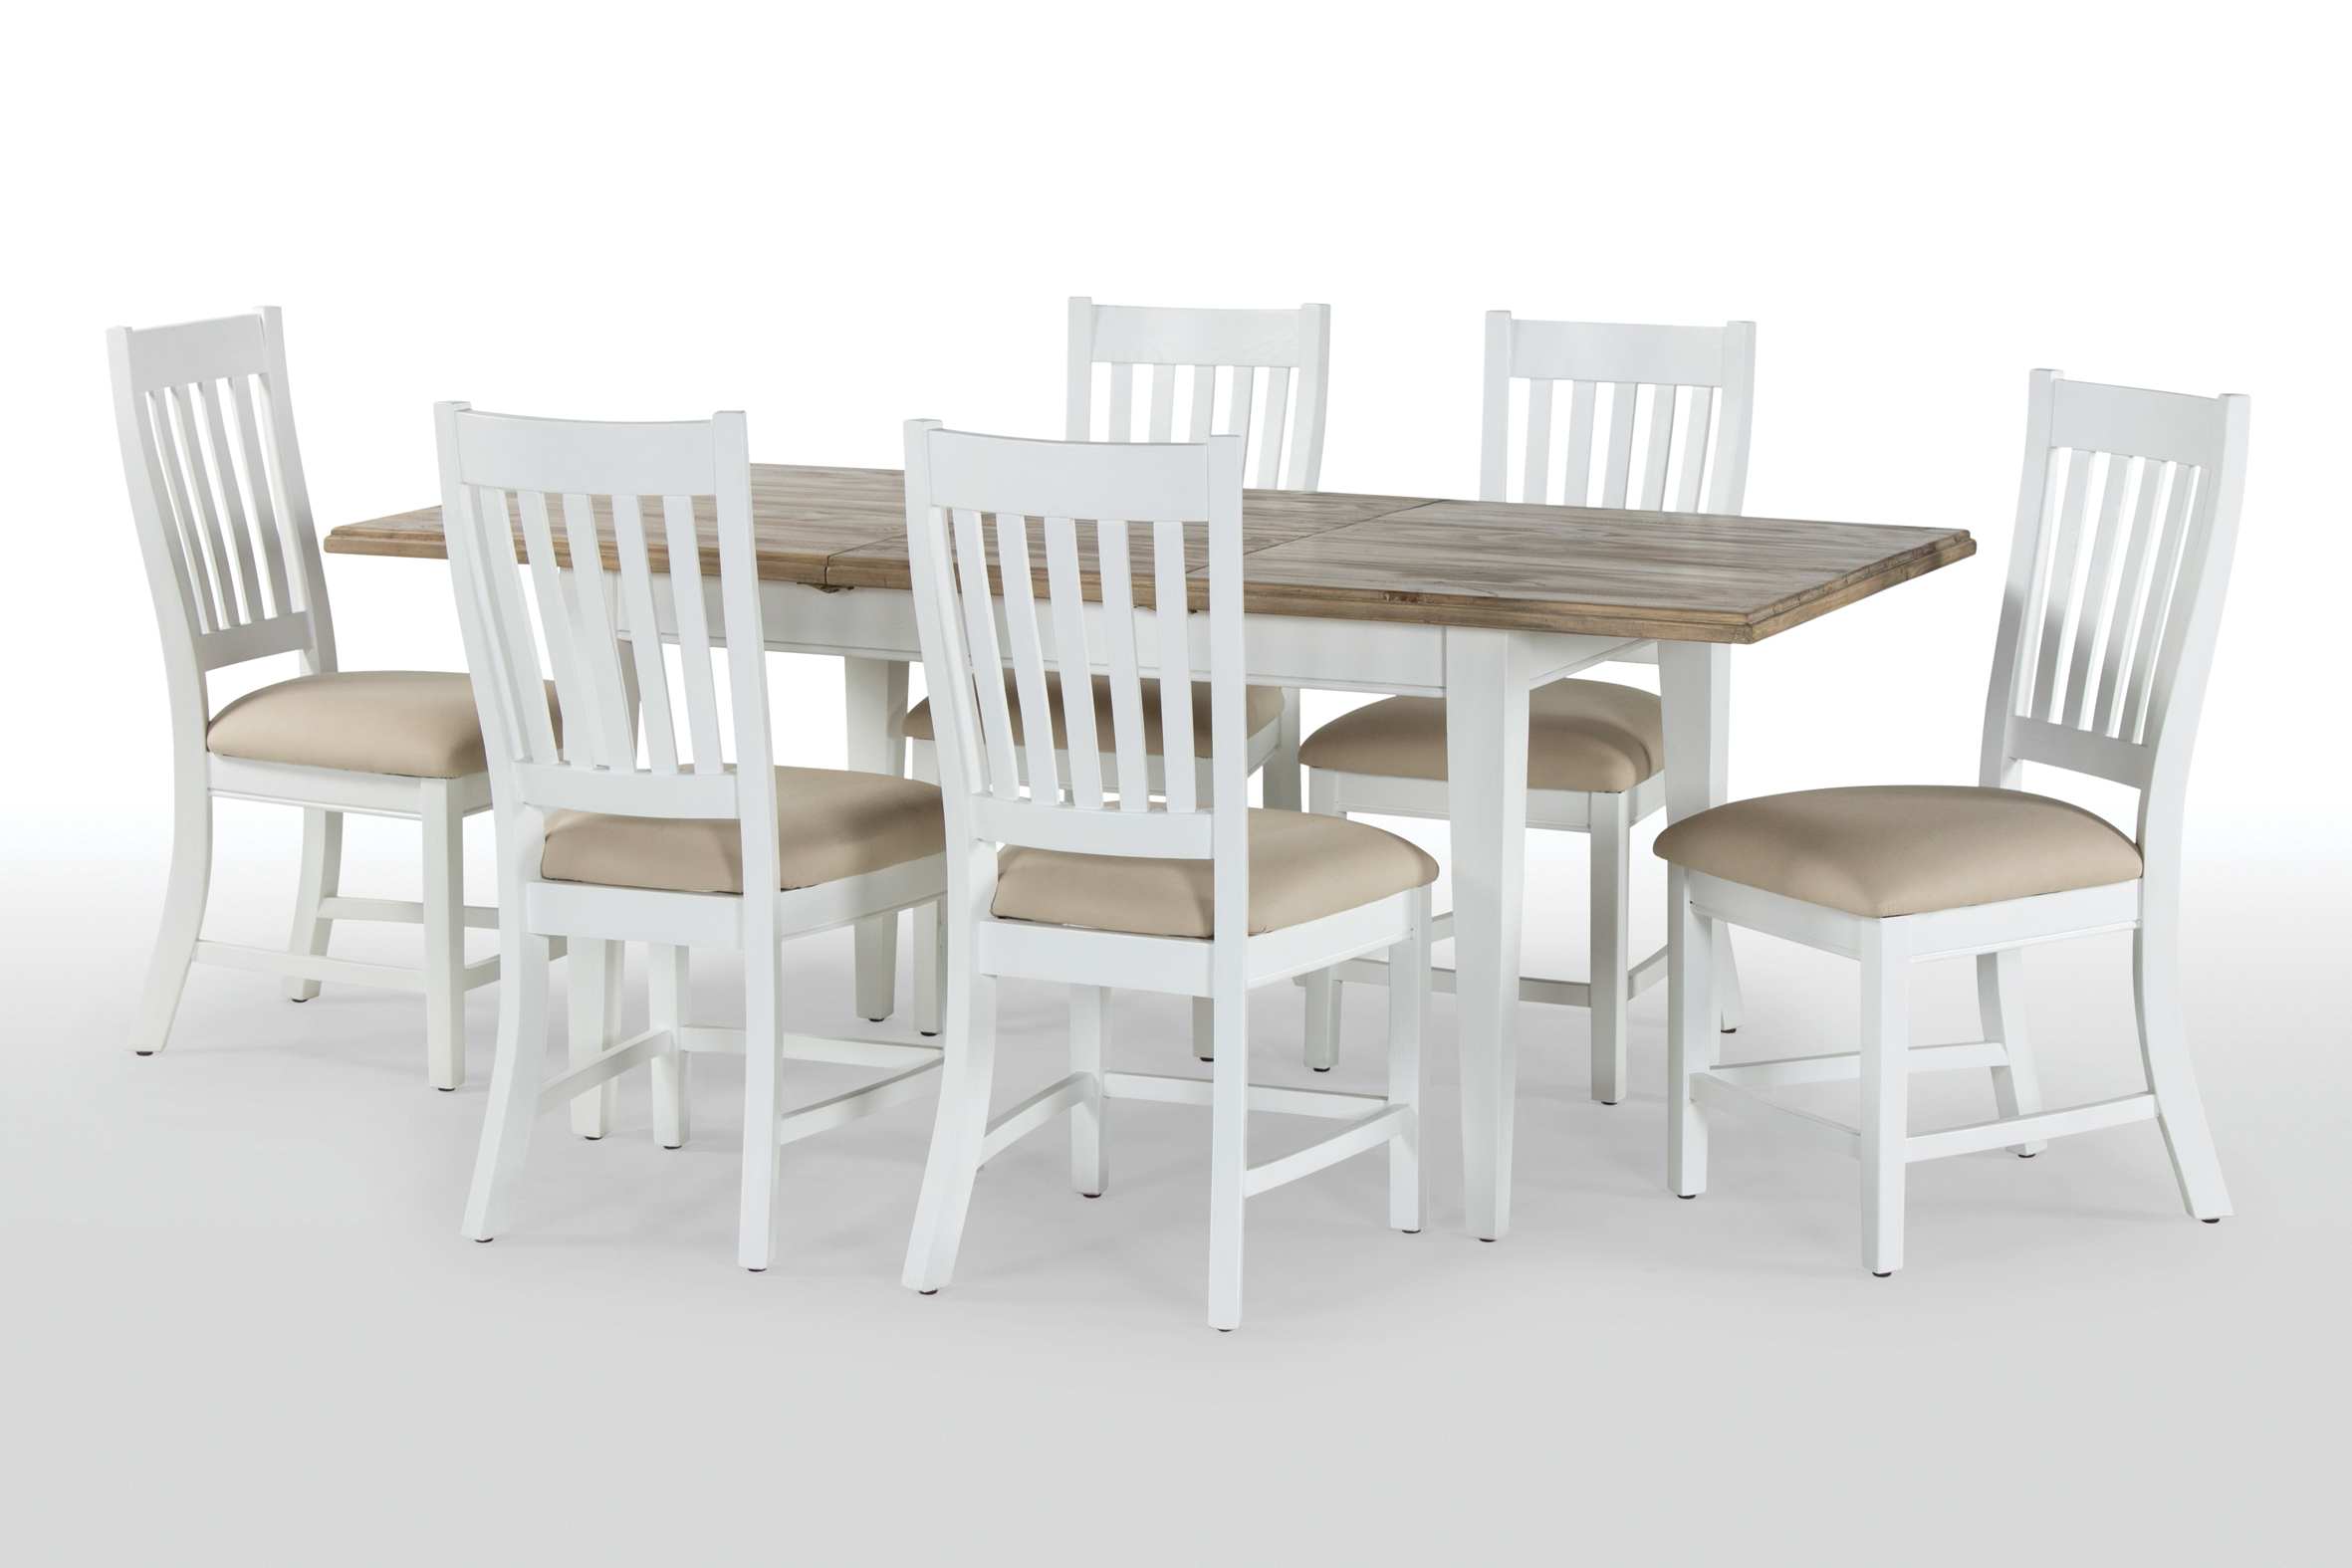 Inadam Furniture Extending Dining Table 150200 x 100cm  : RHP 1 A from inadamfurniture.co.uk size 2362 x 1575 jpeg 991kB